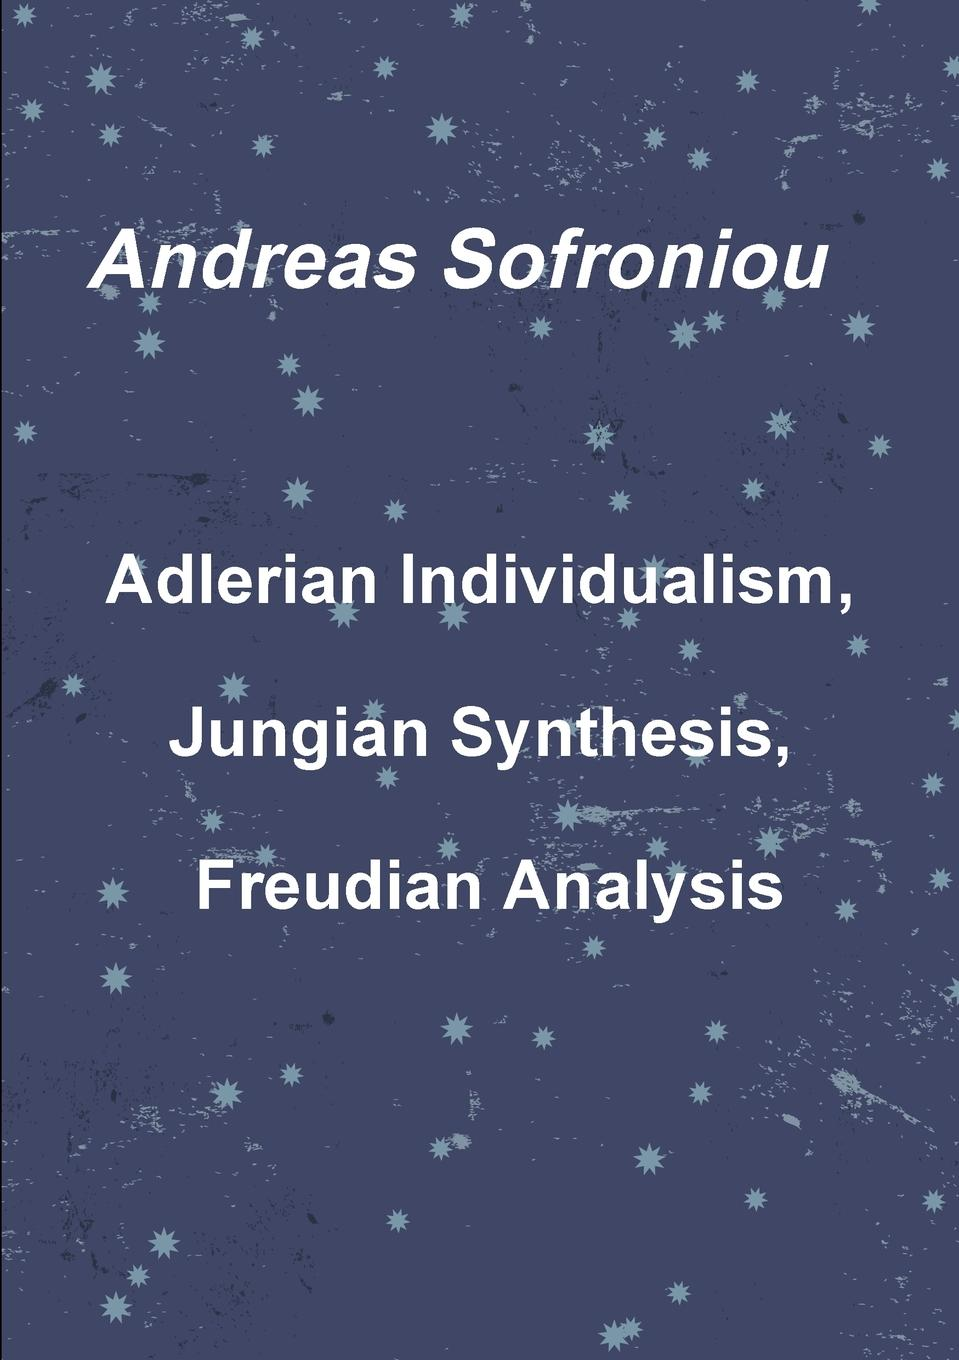 Andreas Sofroniou Adlerian Individualism, Jungian Synthesis, Freudian Analysis